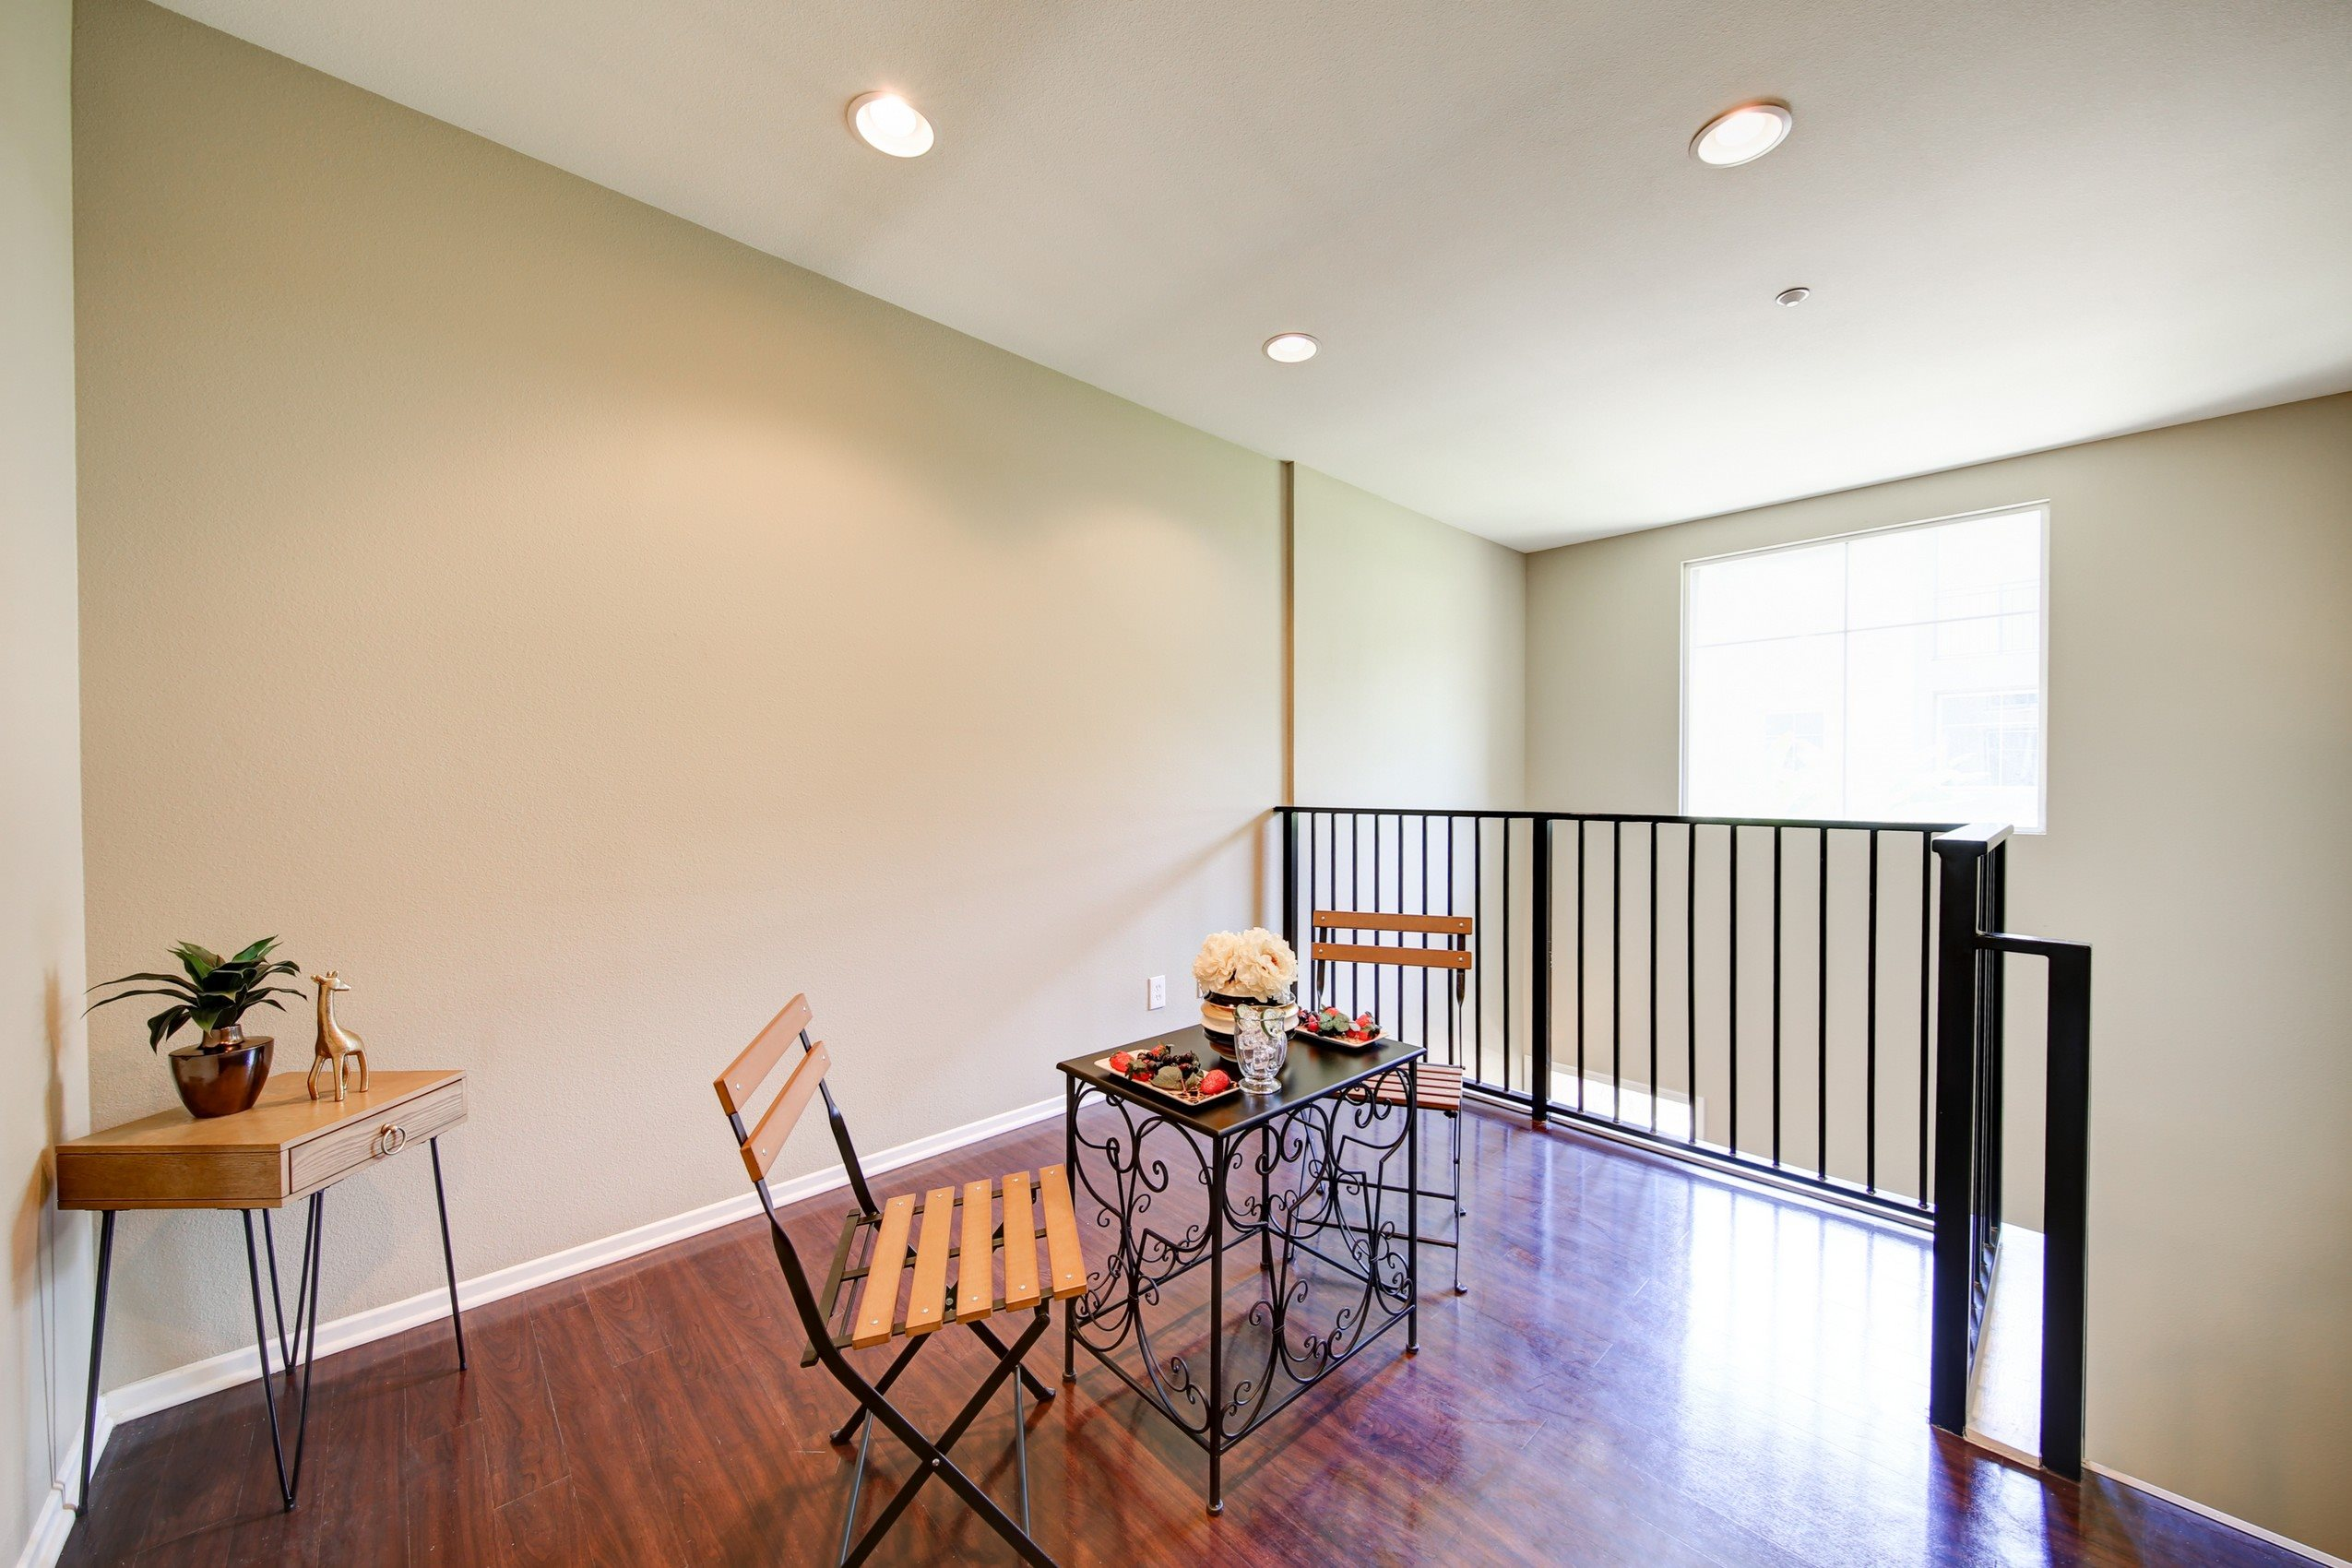 Hardwood Floors at Ontario Town Square Townhomes, Ontario, California